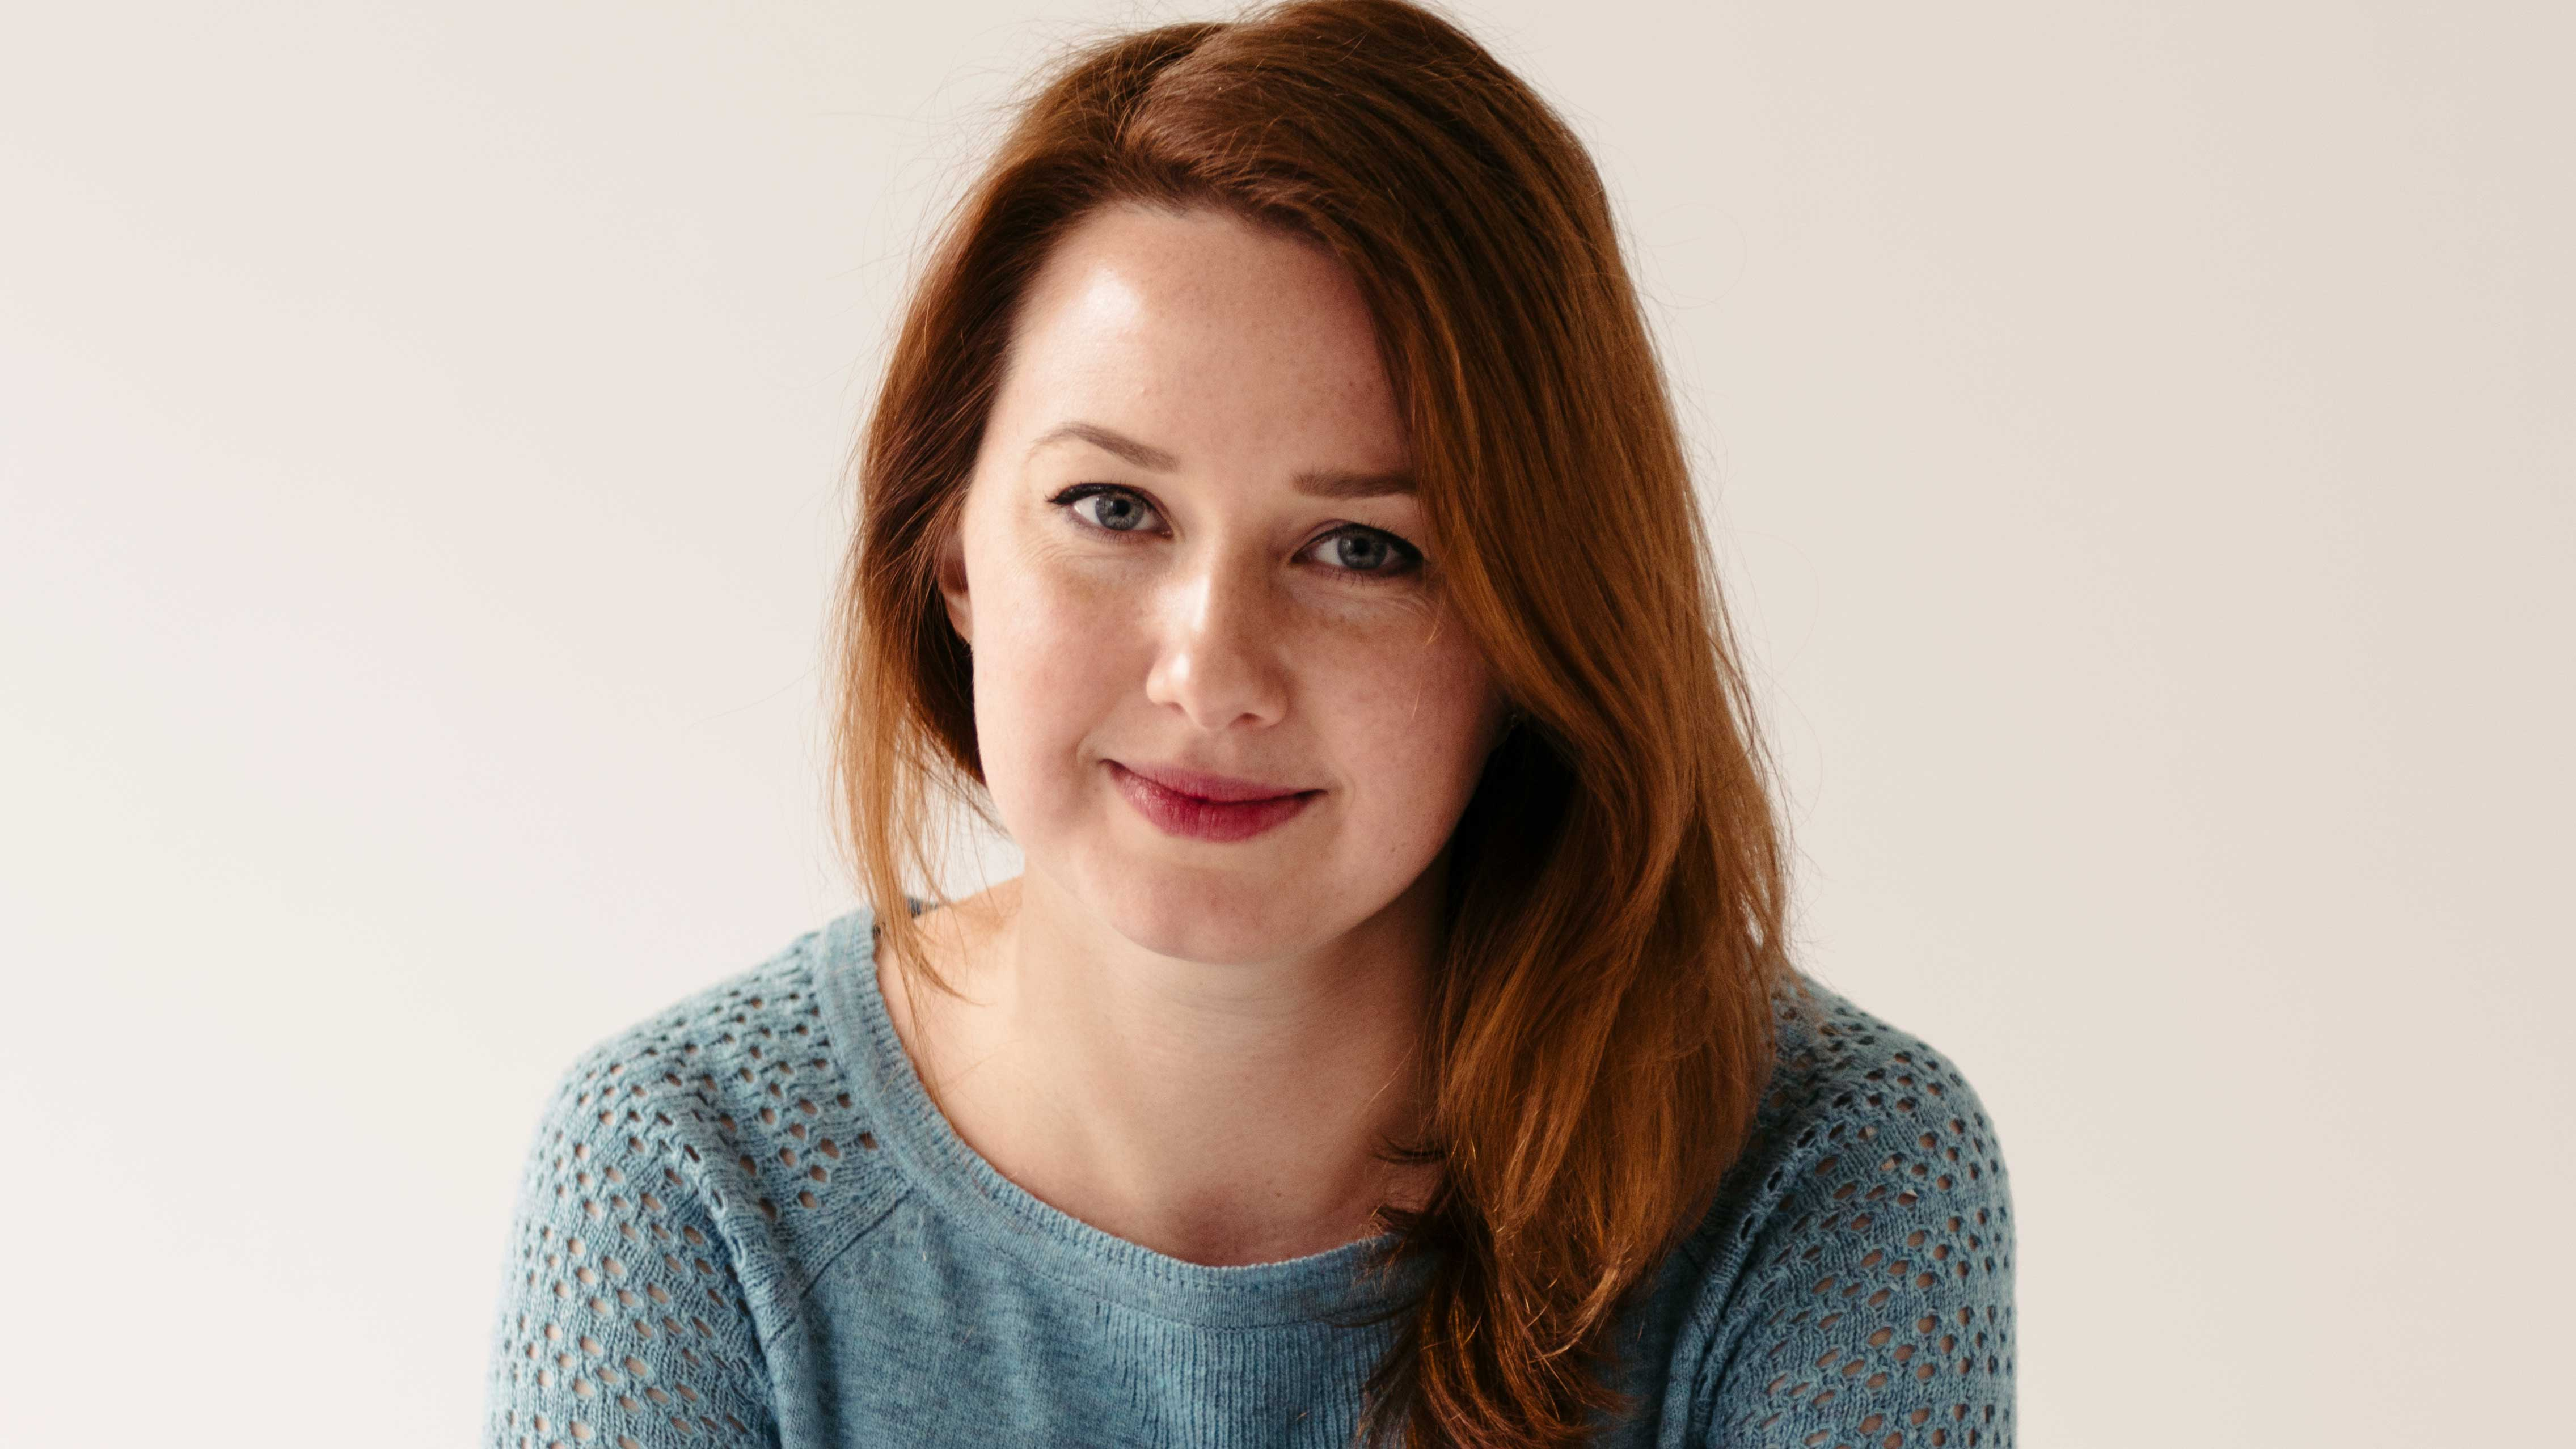 A photograph of Hannah Kent smiling at the camera wearing a blue jumper in front of a plain cream backdrop